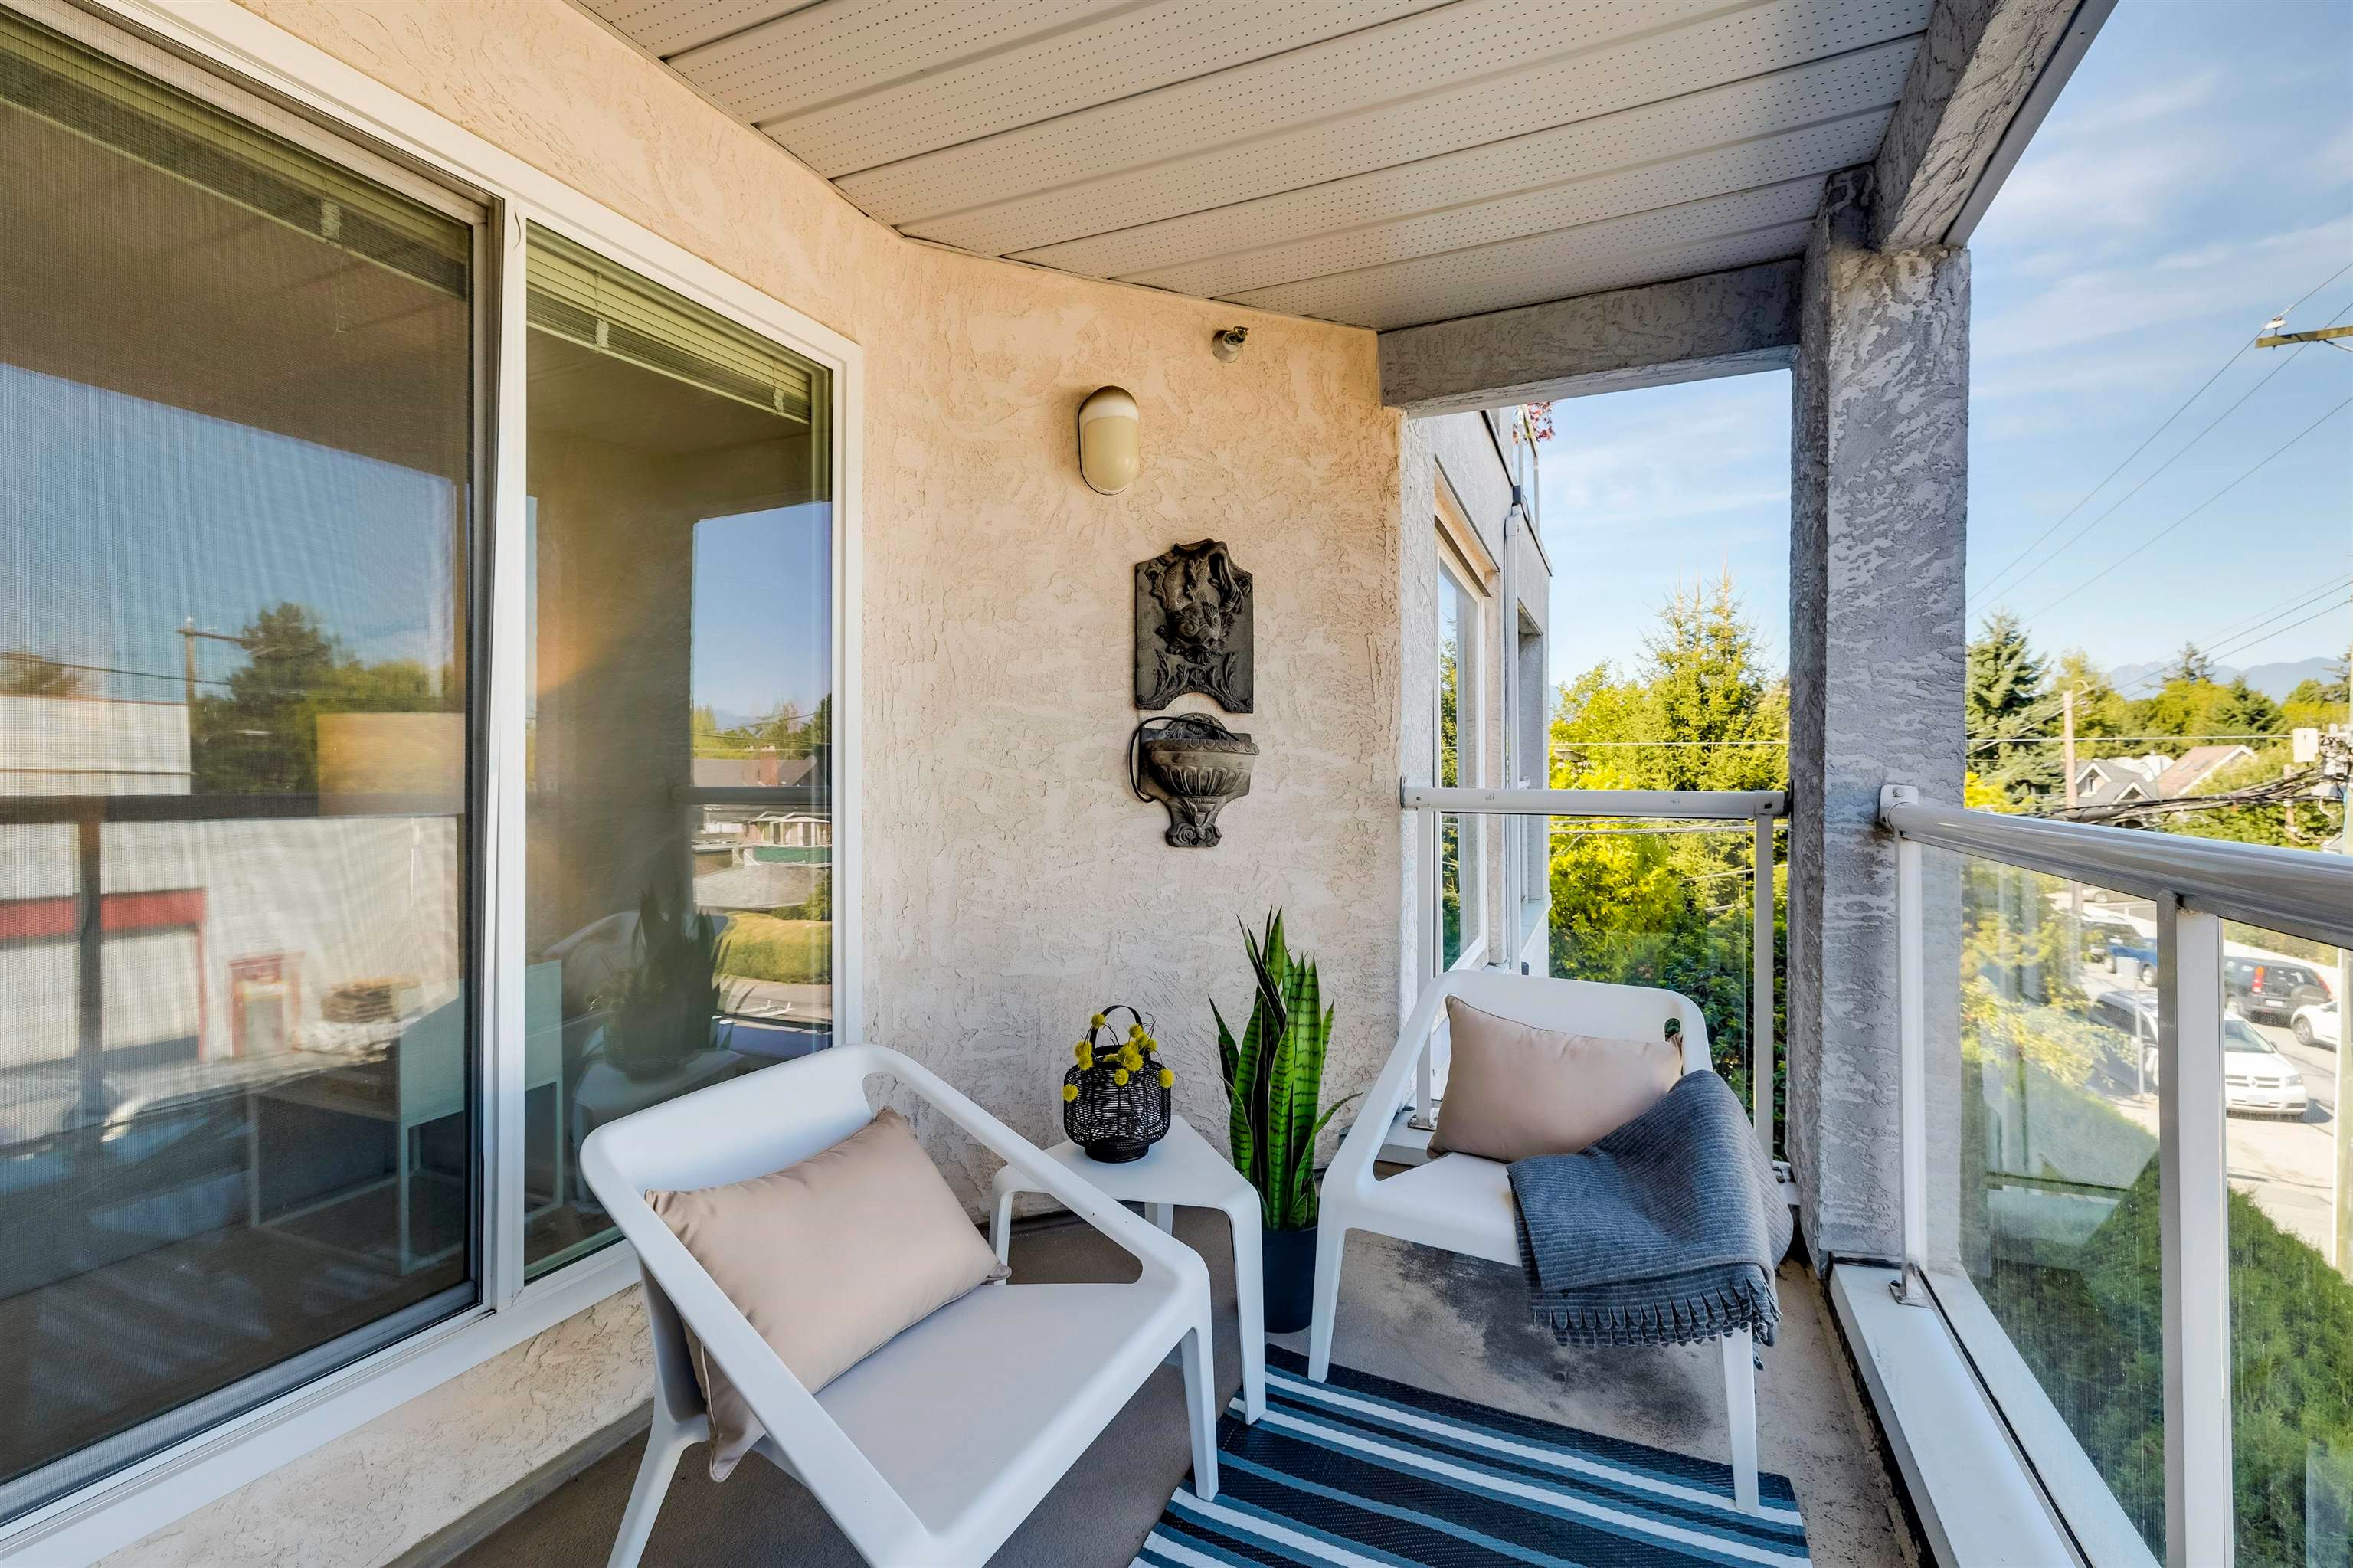 """Main Photo: 302 3505 W BROADWAY in Vancouver: Kitsilano Condo for sale in """"The Collingwood"""" (Vancouver West)  : MLS®# R2617748"""